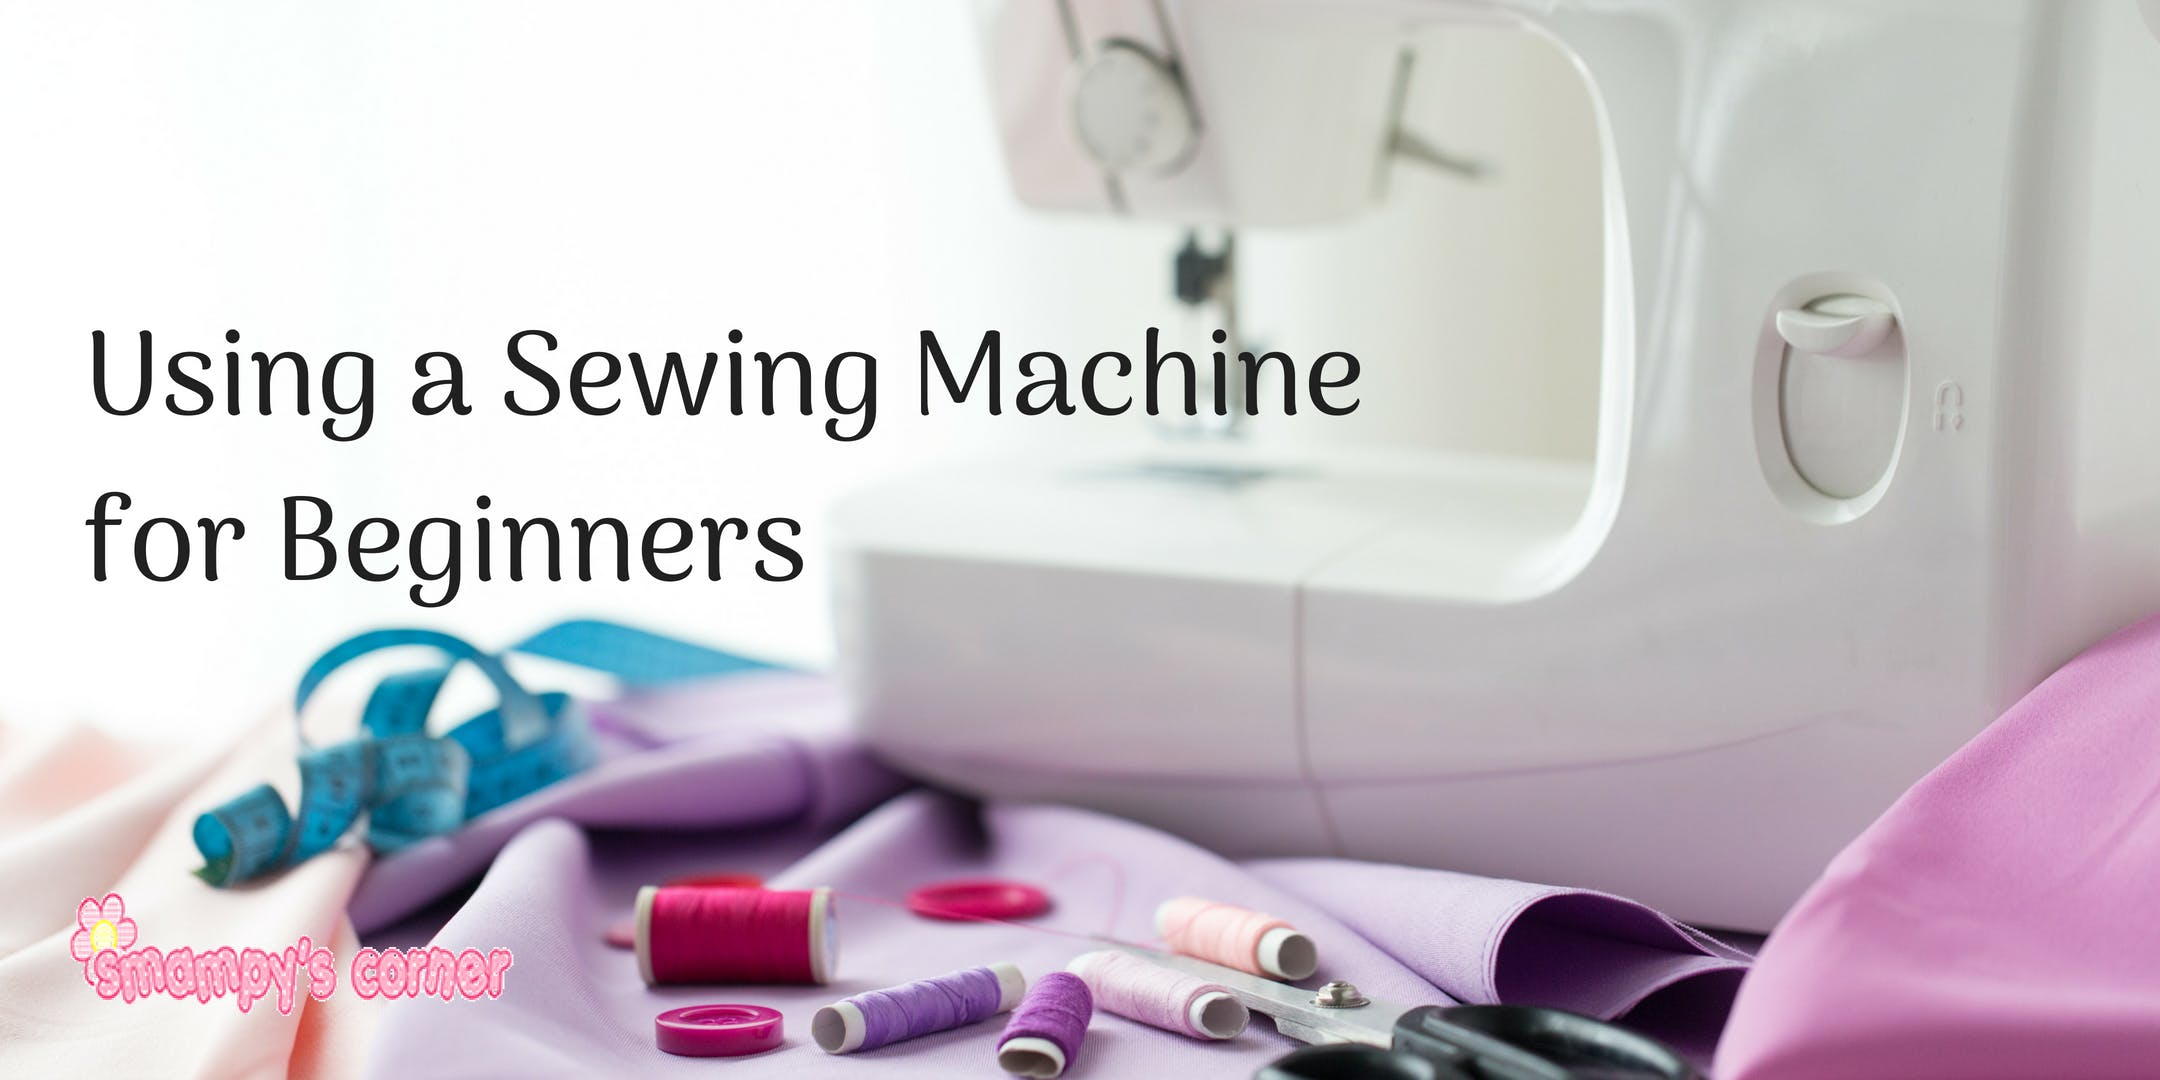 Using a Sewing Machine for Beginners | 18 October 2019